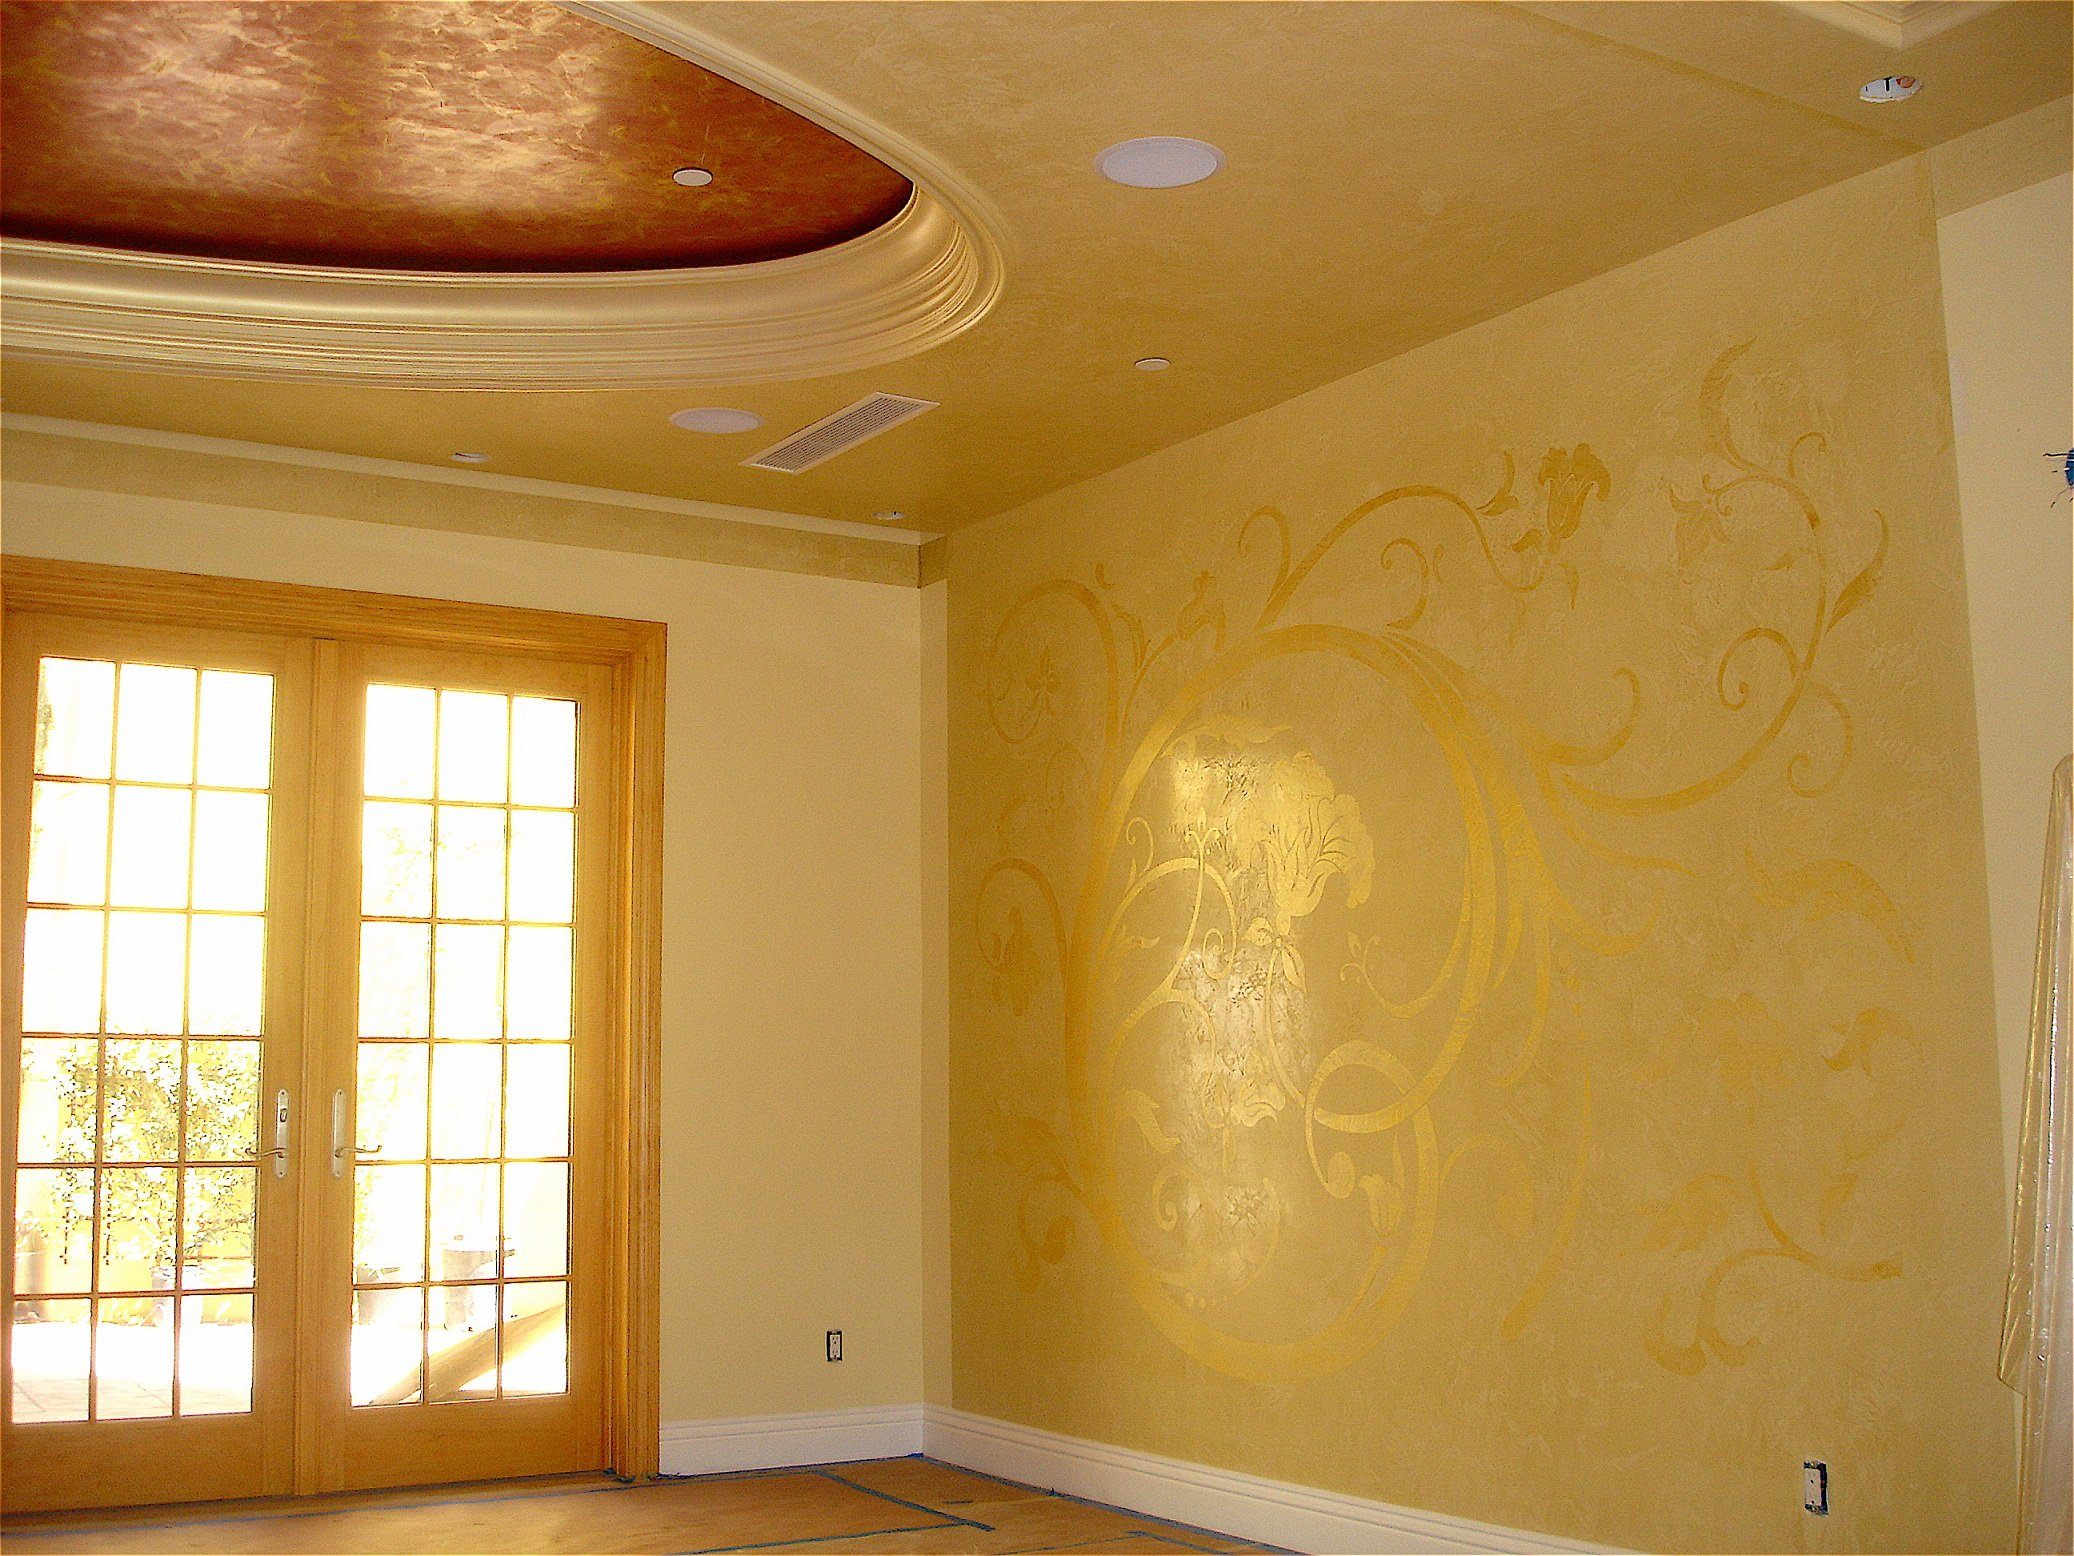 Stucco Lamundo Venetian Plaster with Metallic Wax | Meoded Paint ...